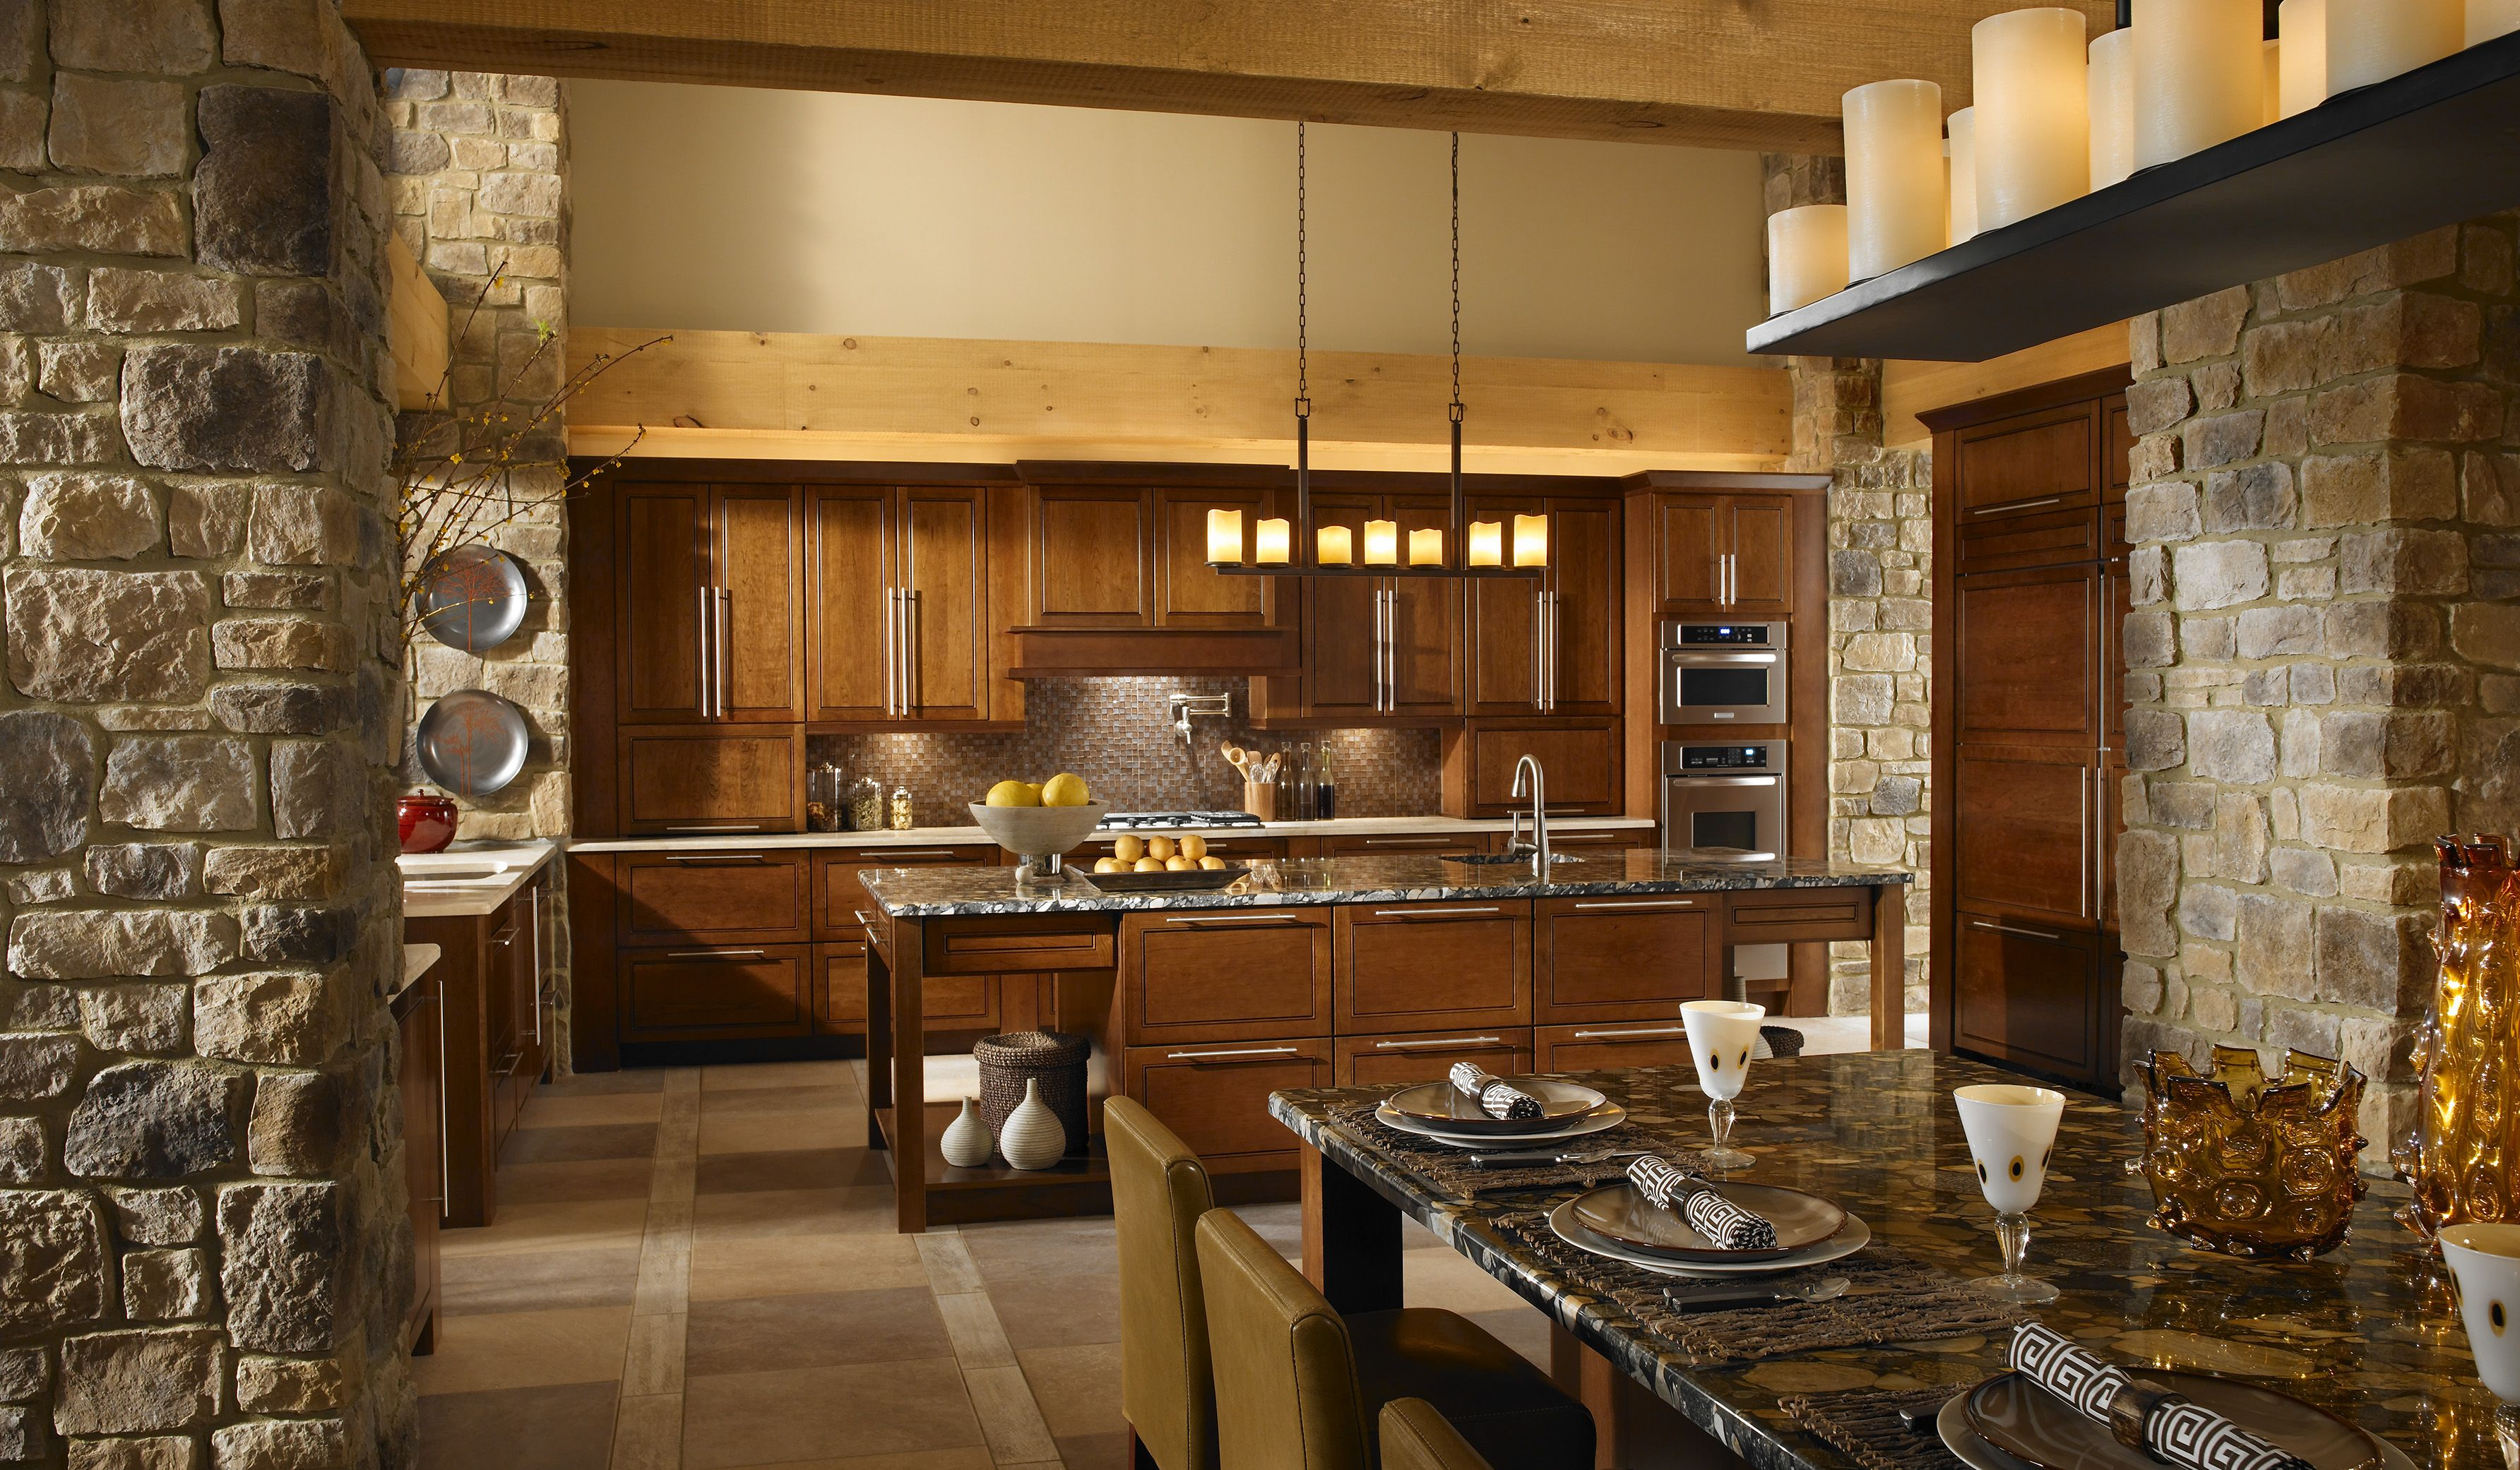 Rustic Stone Kitchen And Stone Pillars Candle Chandelier Farmhouse Kitchen Design Contemporary Kitchen Stone Wall Cladding